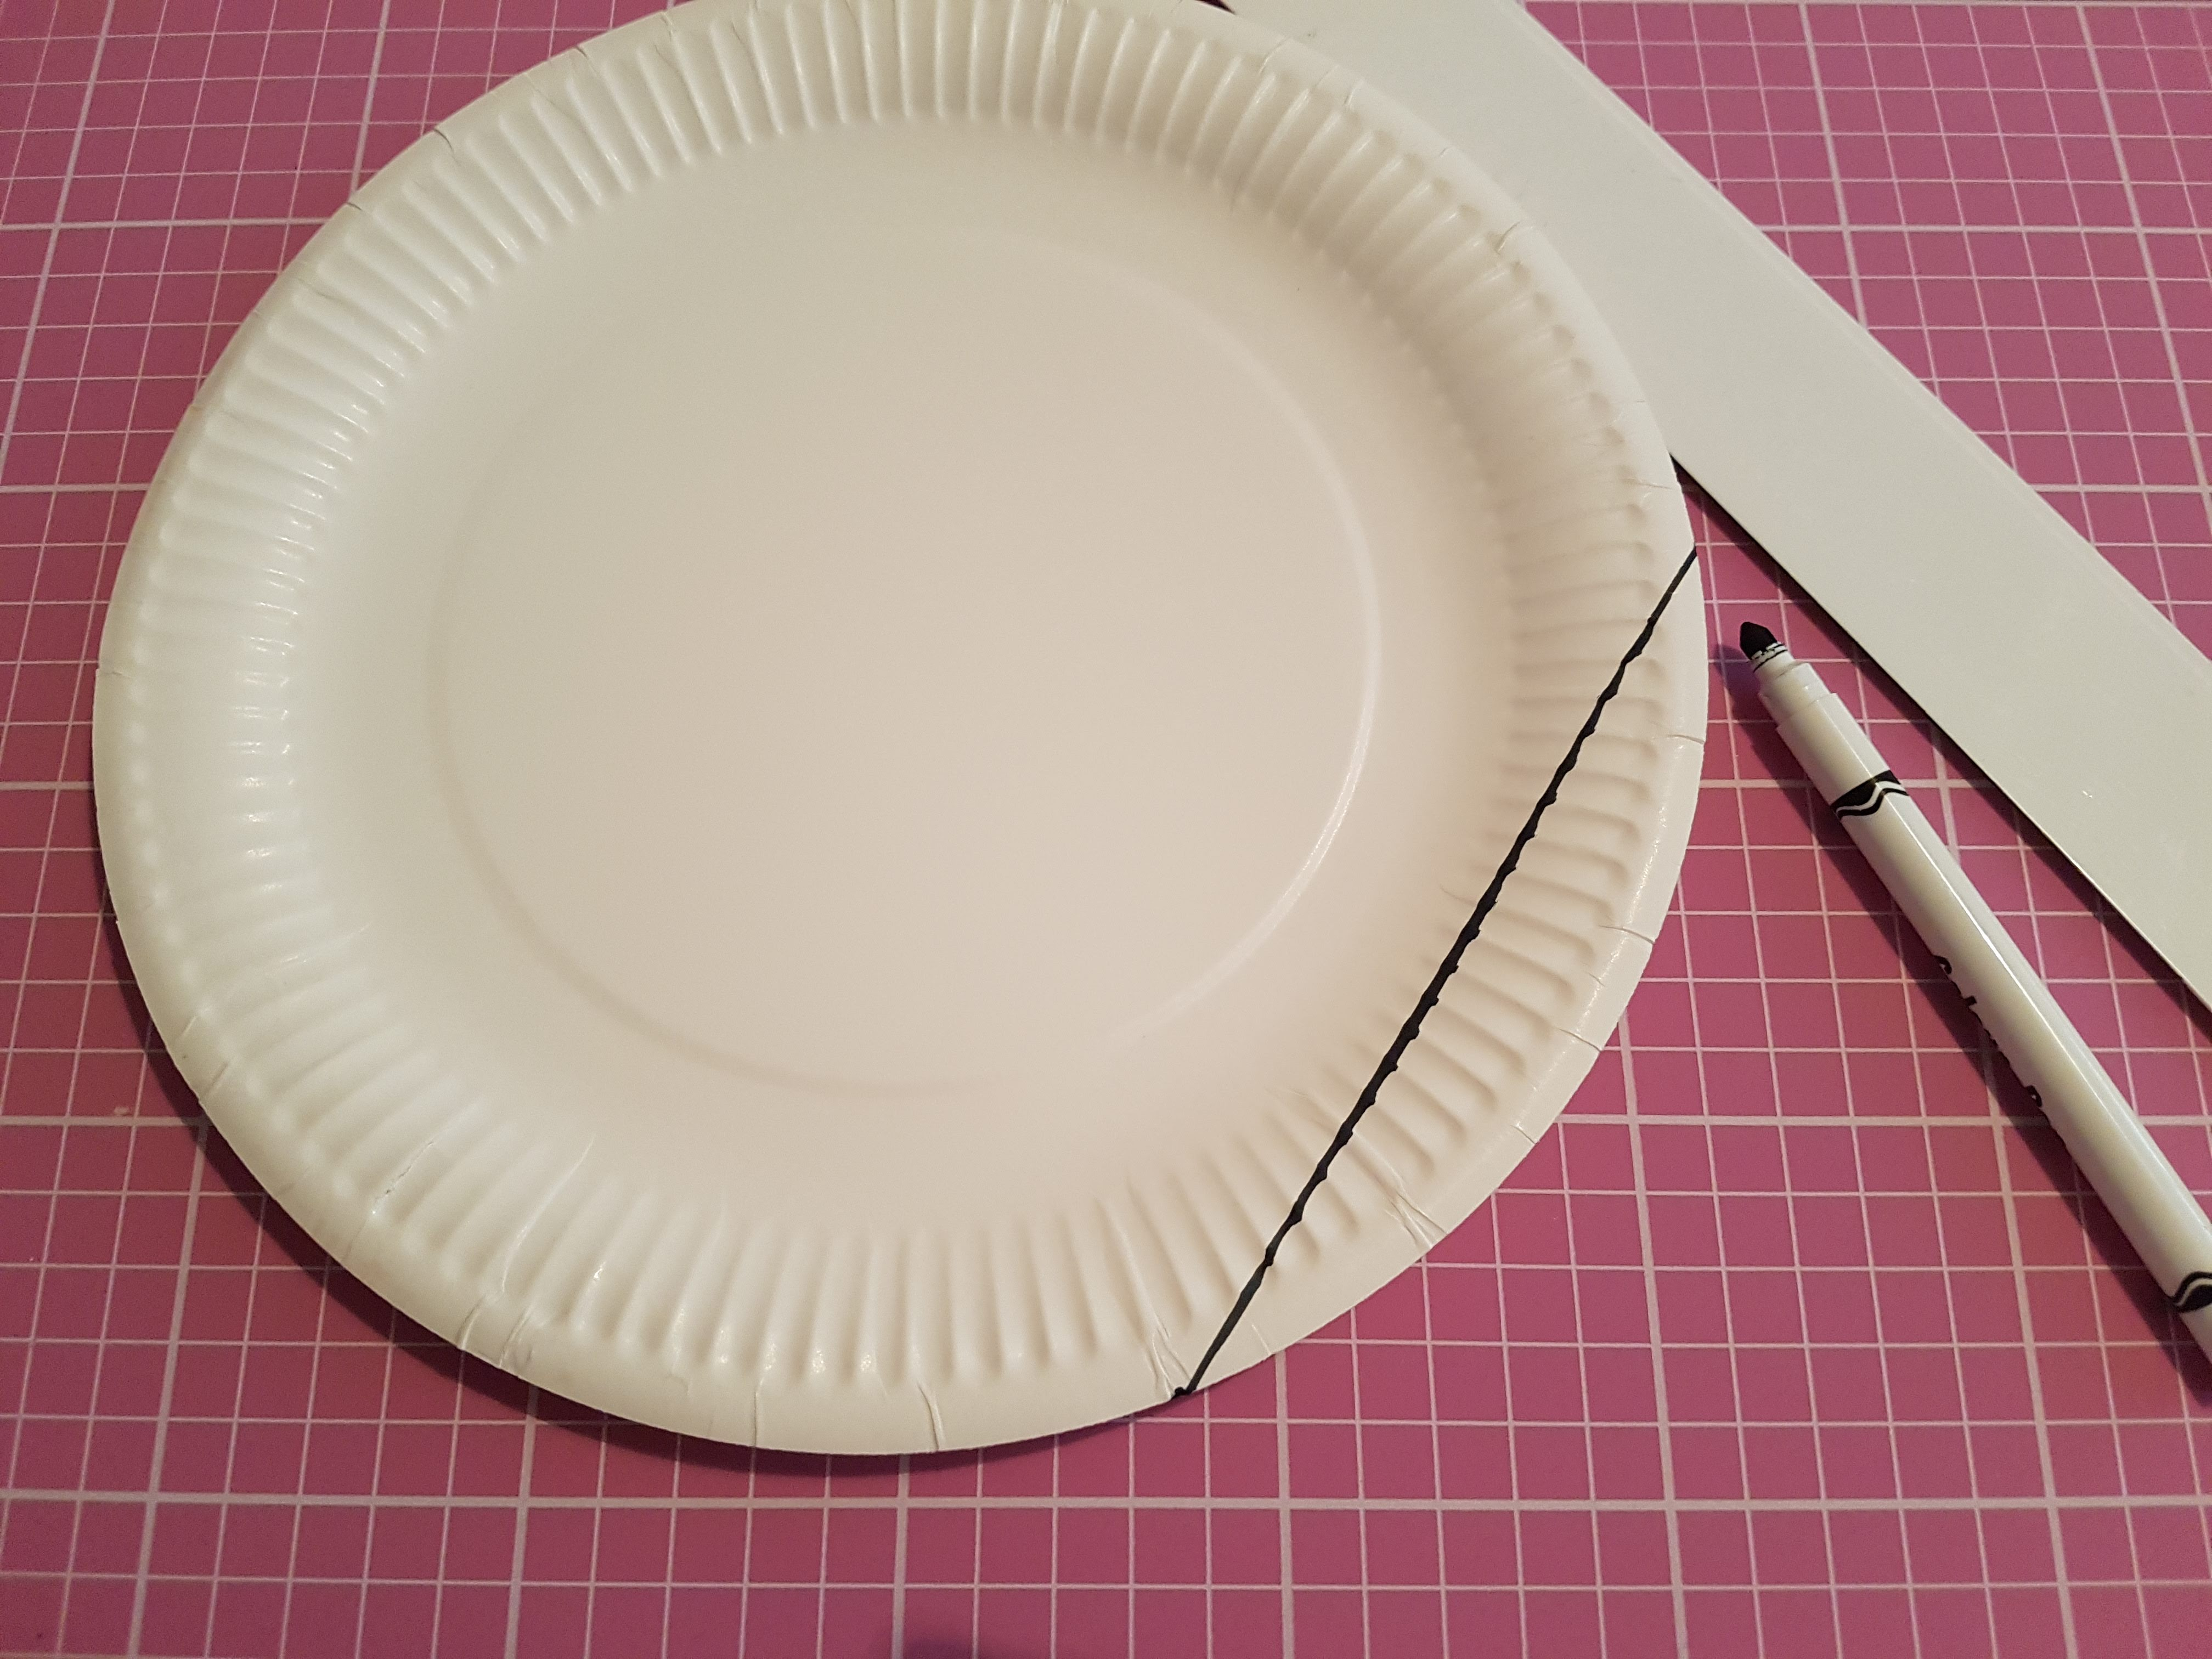 paper plate with a chord drawn